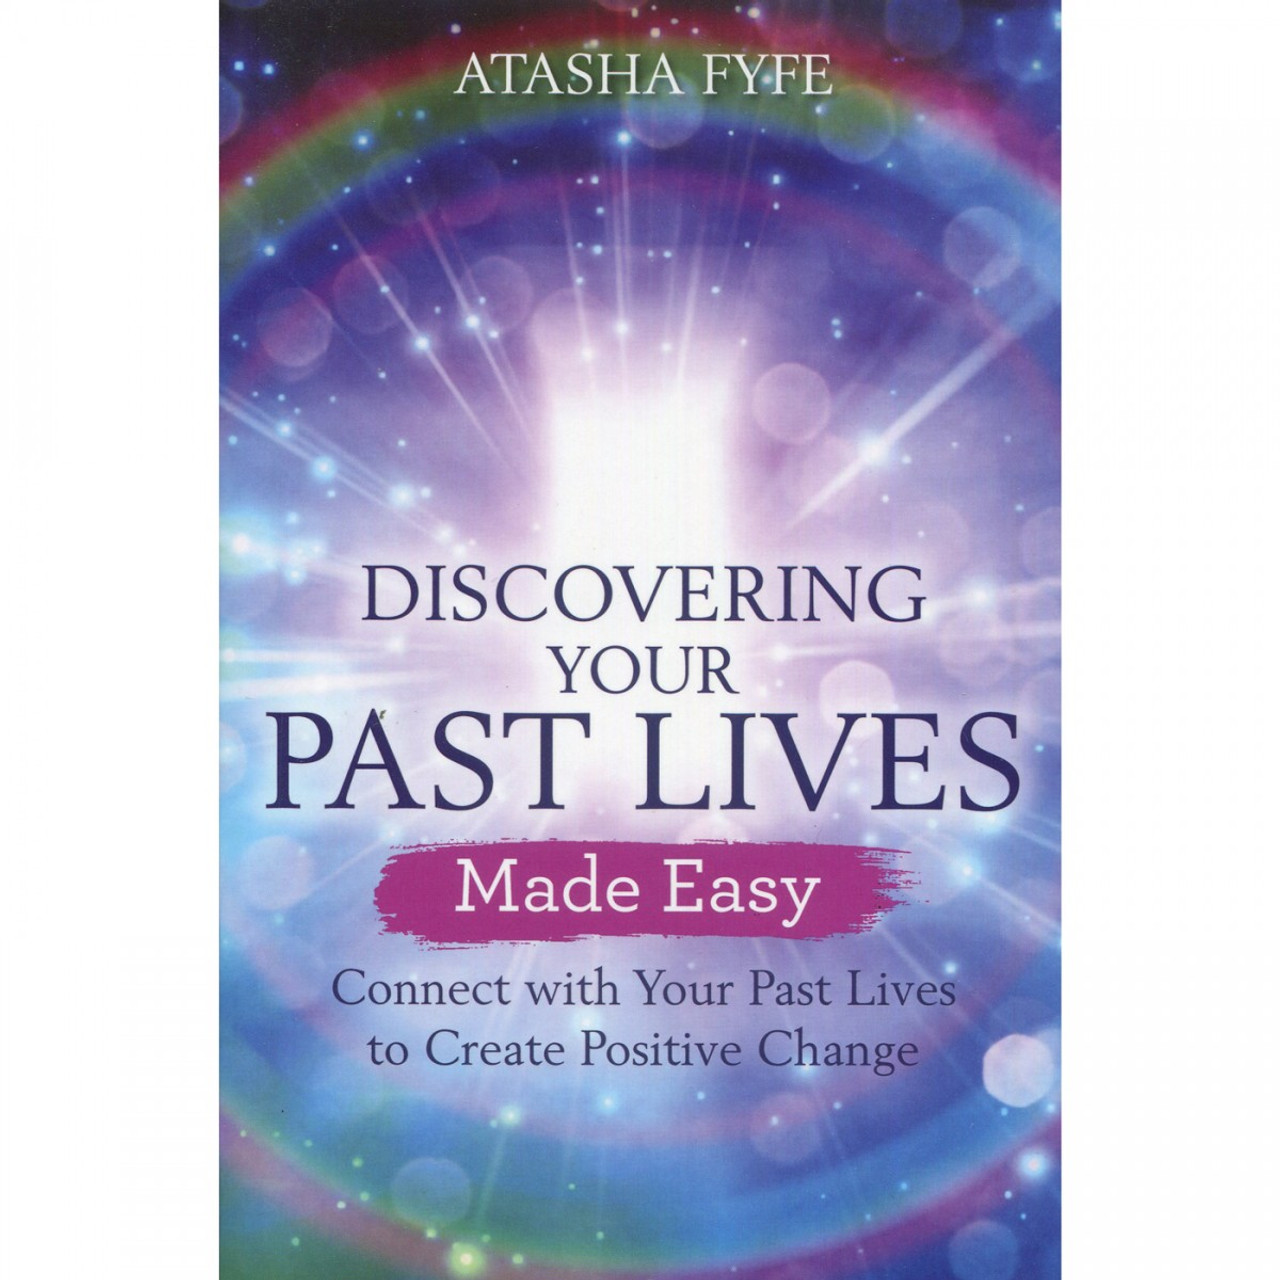 Discovering Your Past Lives Made Easy by Atasha Fyfe